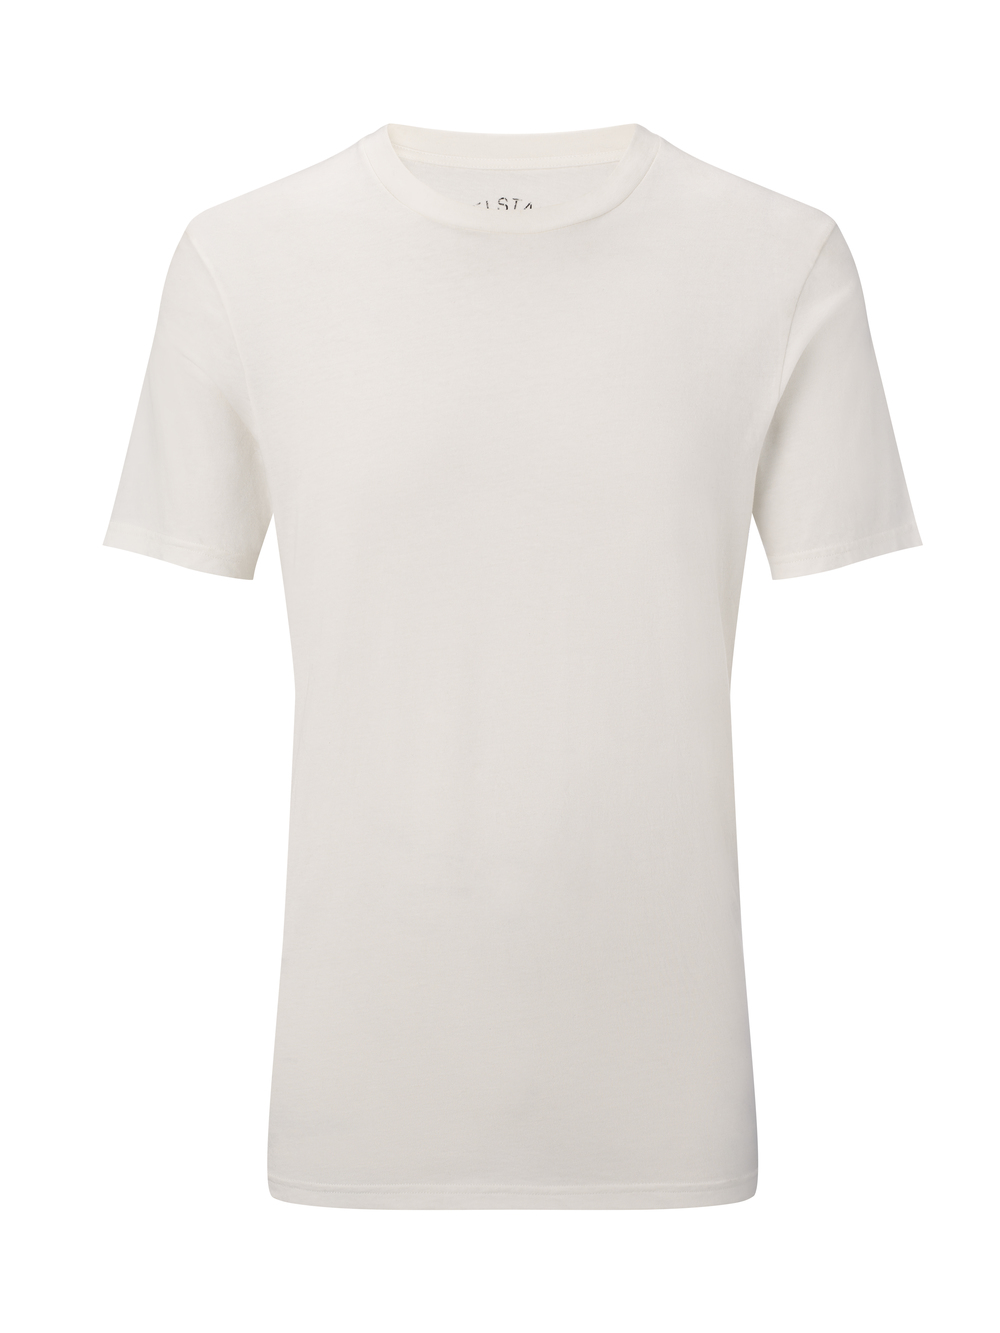 Beckham for Belstaff_Fornham T-Shirt_White_1.jpg